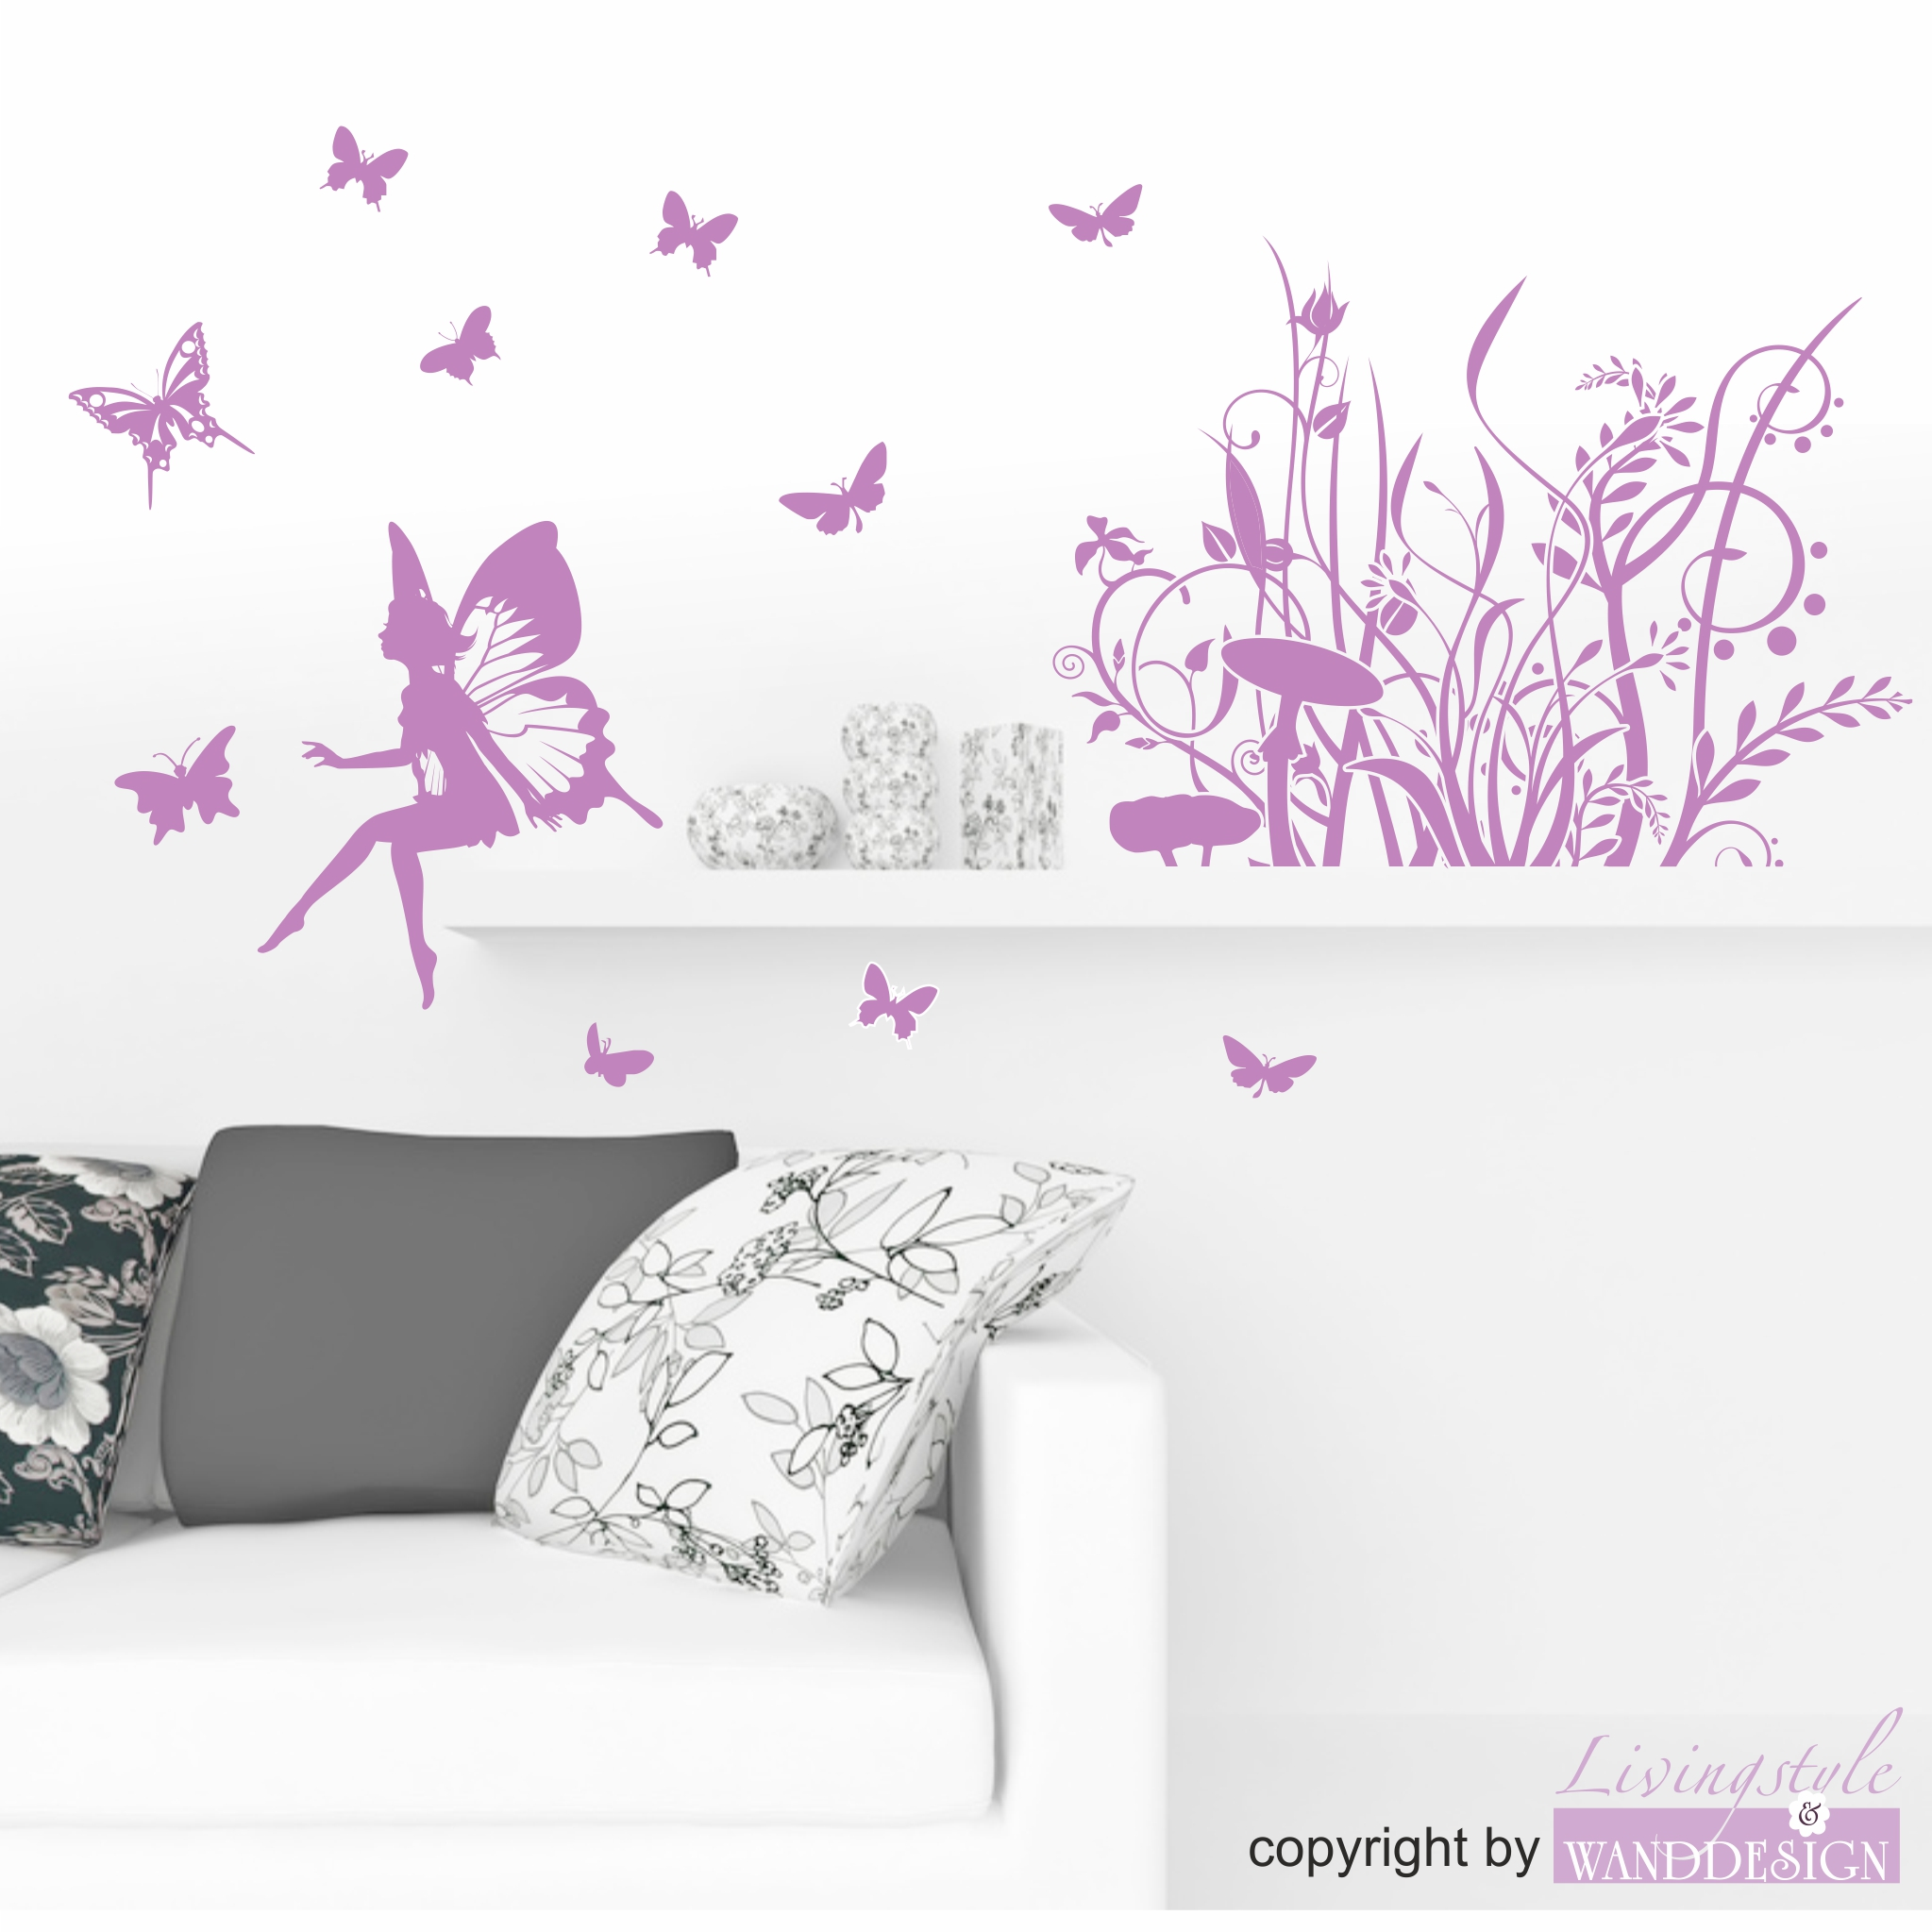 wandtattoo kleiner elfenwald mit elfe zauberhafte elfenwelt wandtattoos livingstyle. Black Bedroom Furniture Sets. Home Design Ideas